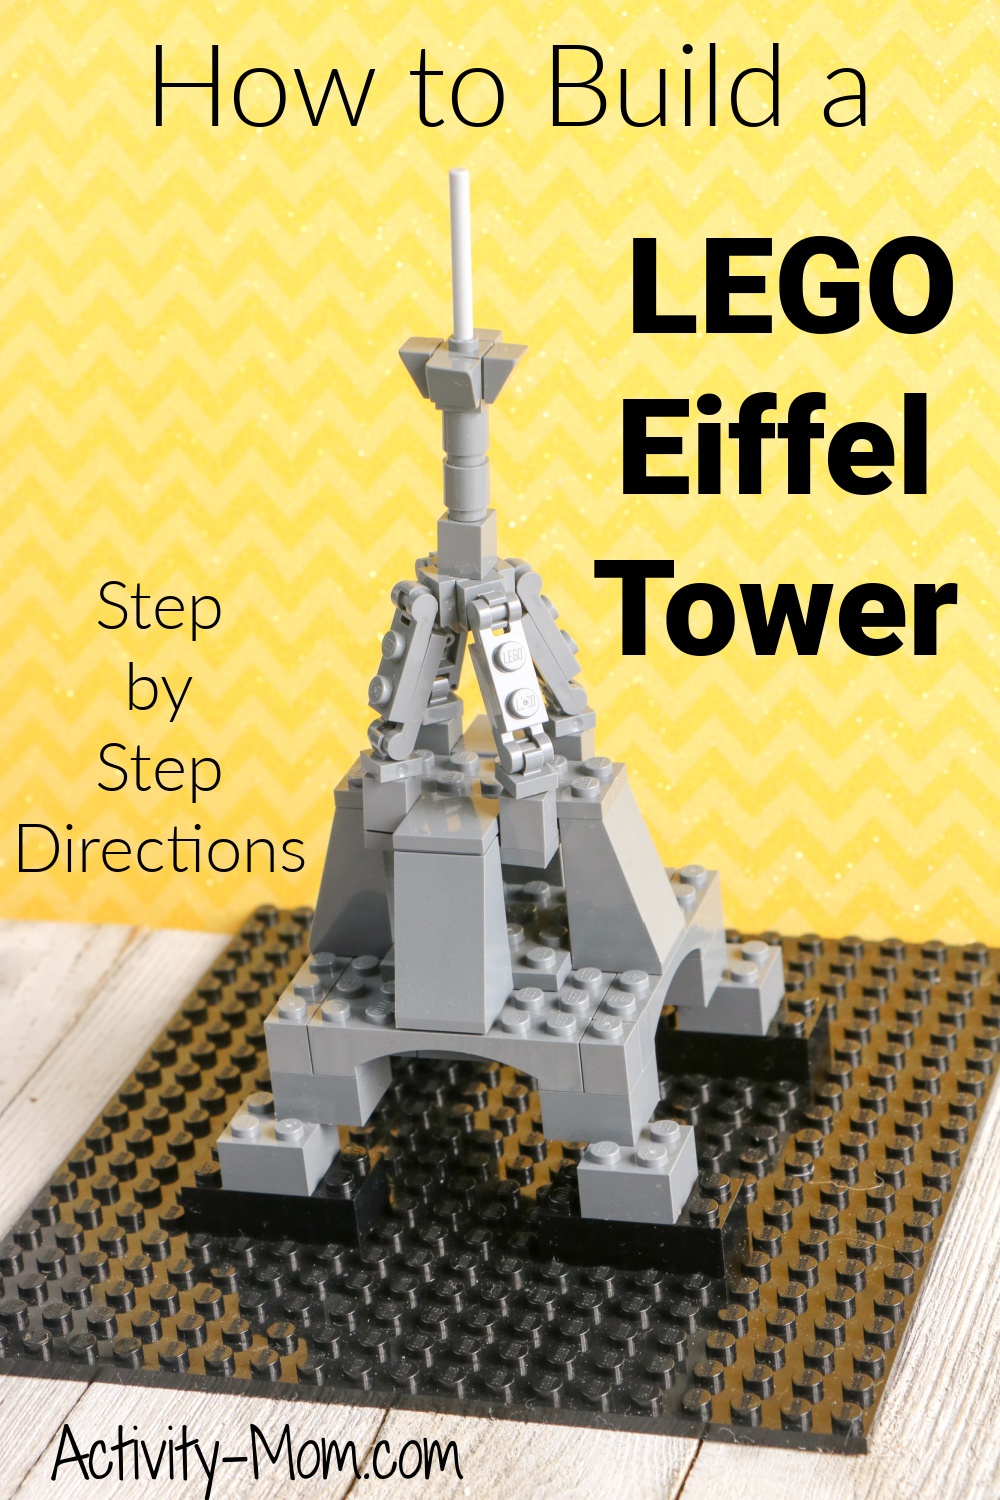 How to build a Lego Eiffel Tower